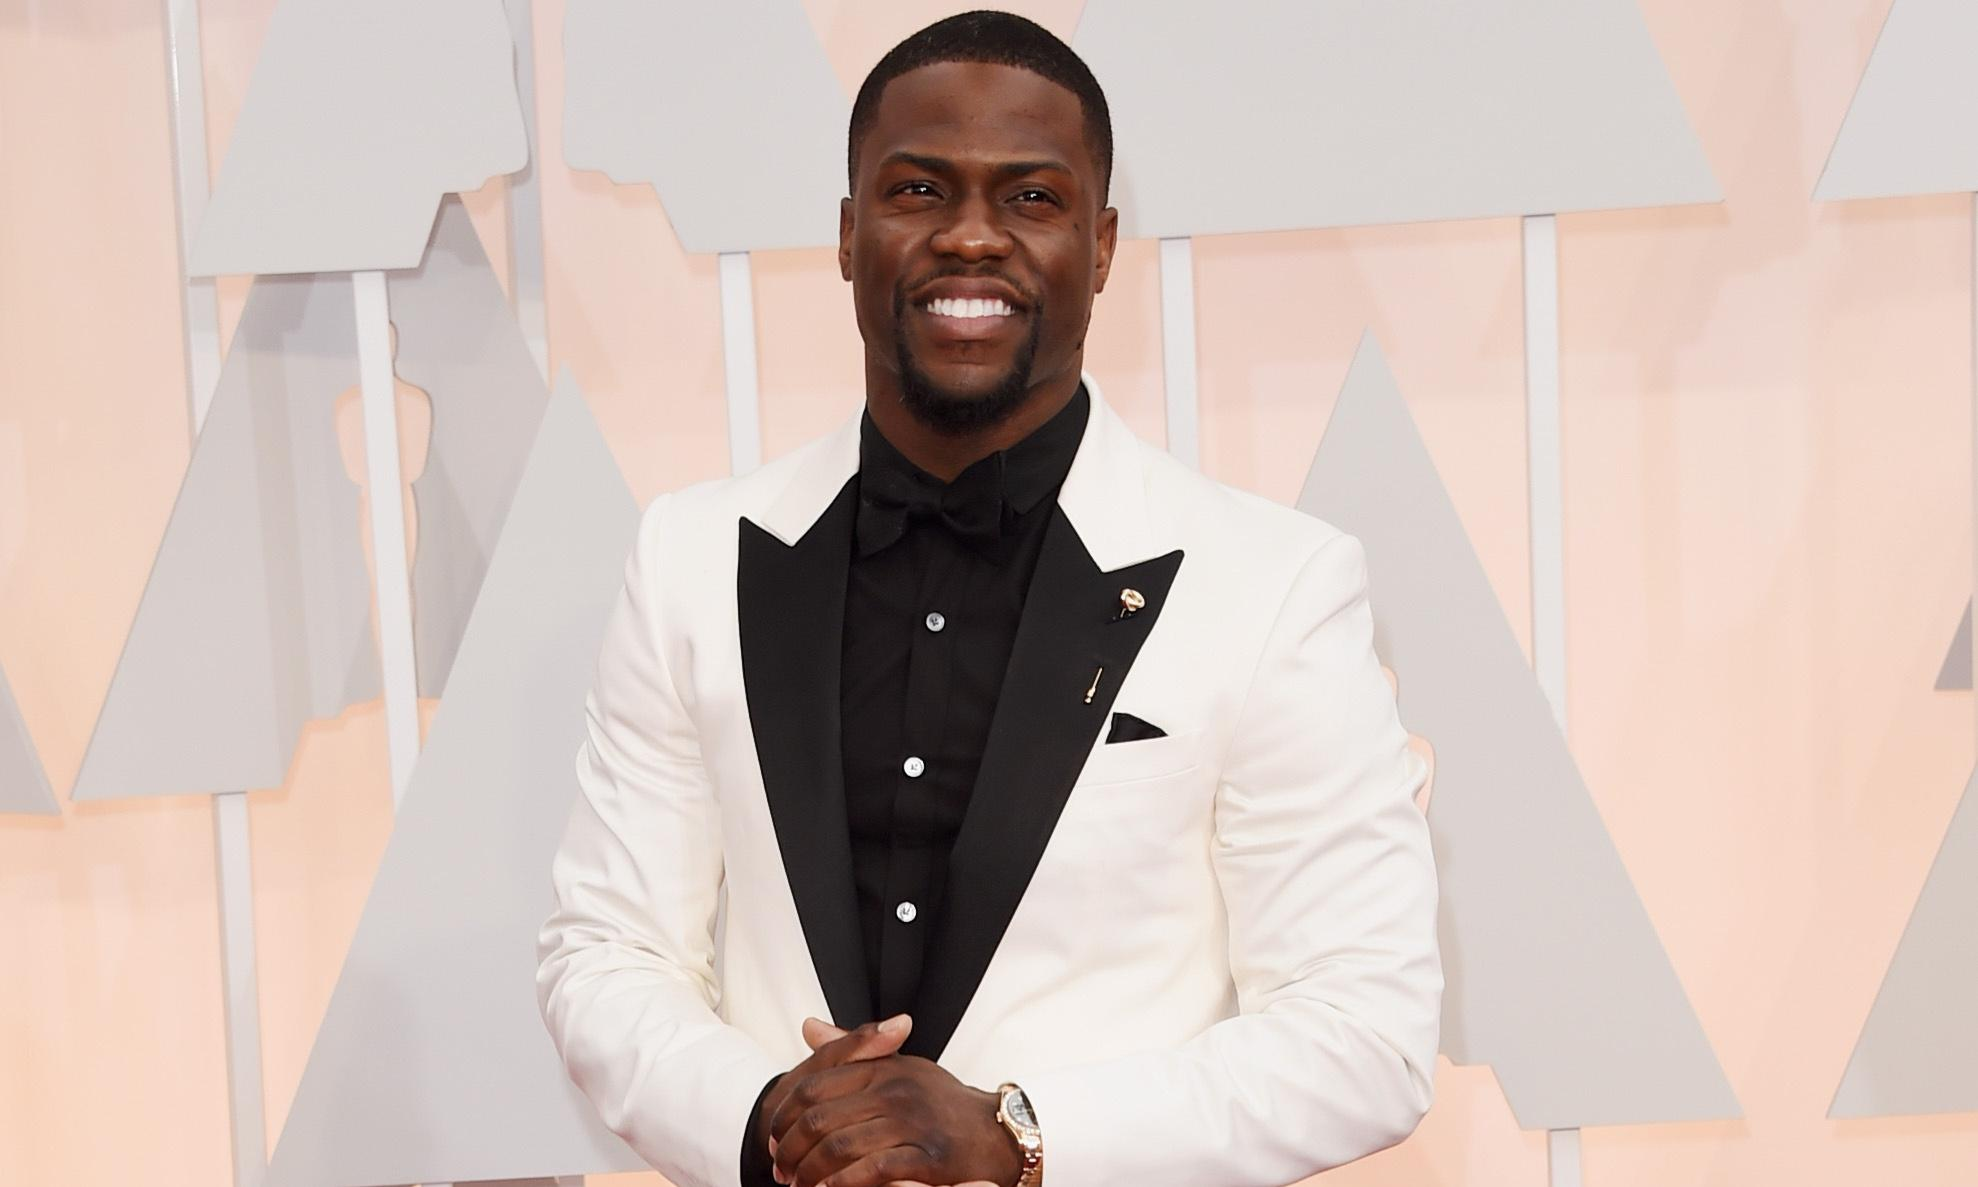 Oscars host Kevin Hart's homophobia is no laughing matter